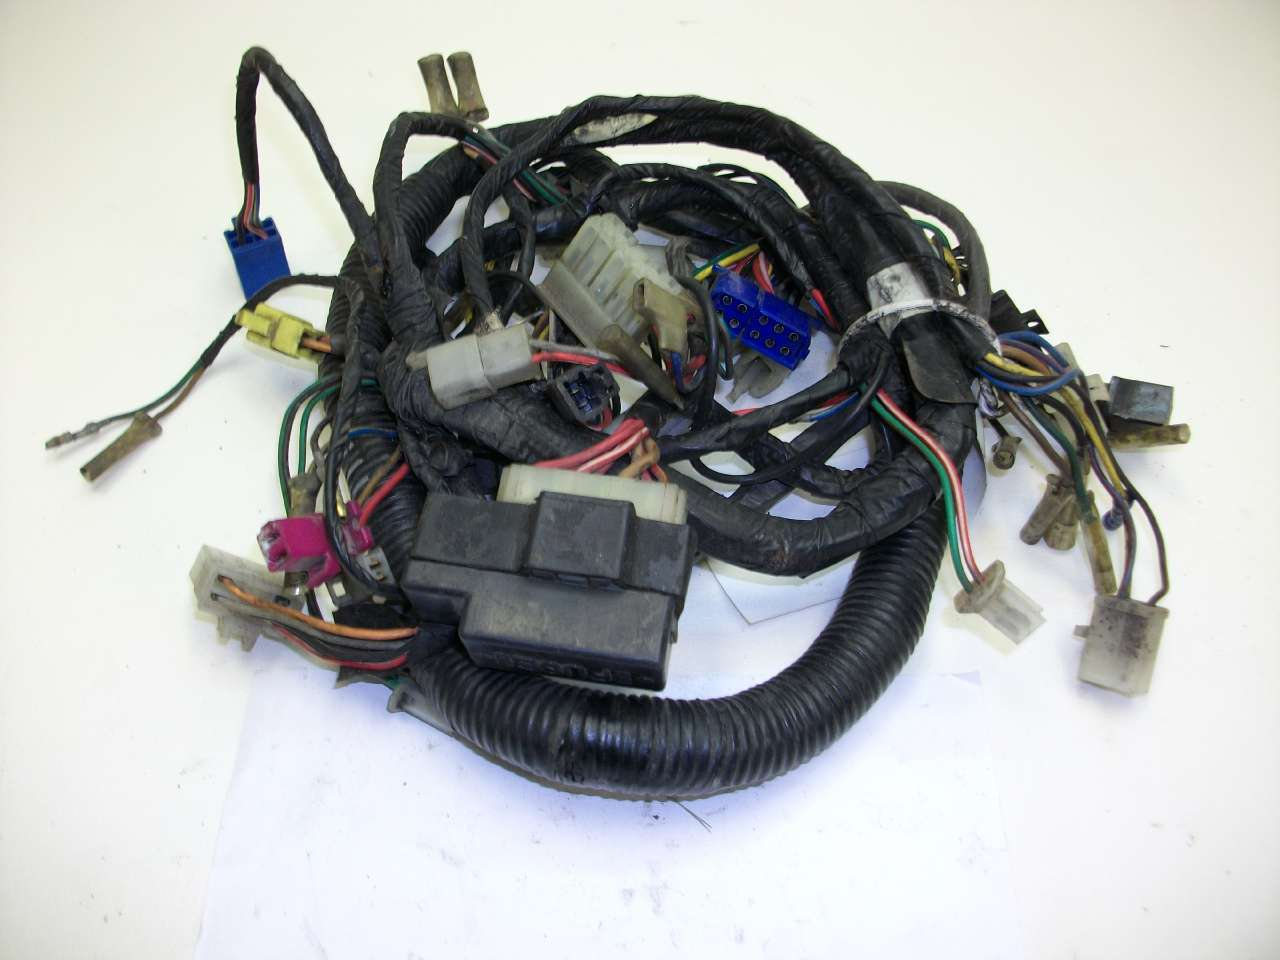 1nr4-feac214b9b965f6221d3ee01ccd2eb04 Yamaha Wire Harness on pontiac wire harness, chrysler wire harness, mercruiser wire harness, toyota wire harness, kawasaki wire harness, chevrolet wire harness, gmc wire harness, daihatsu wire harness, johnson wire harness, fisher wire harness, crown wire harness, nissan wire harness, sony wire harness, ford wire harness, daewoo wire harness, porsche wire harness, mercury wire harness, gibson wire harness, evinrude wire harness, jvc wire harness,